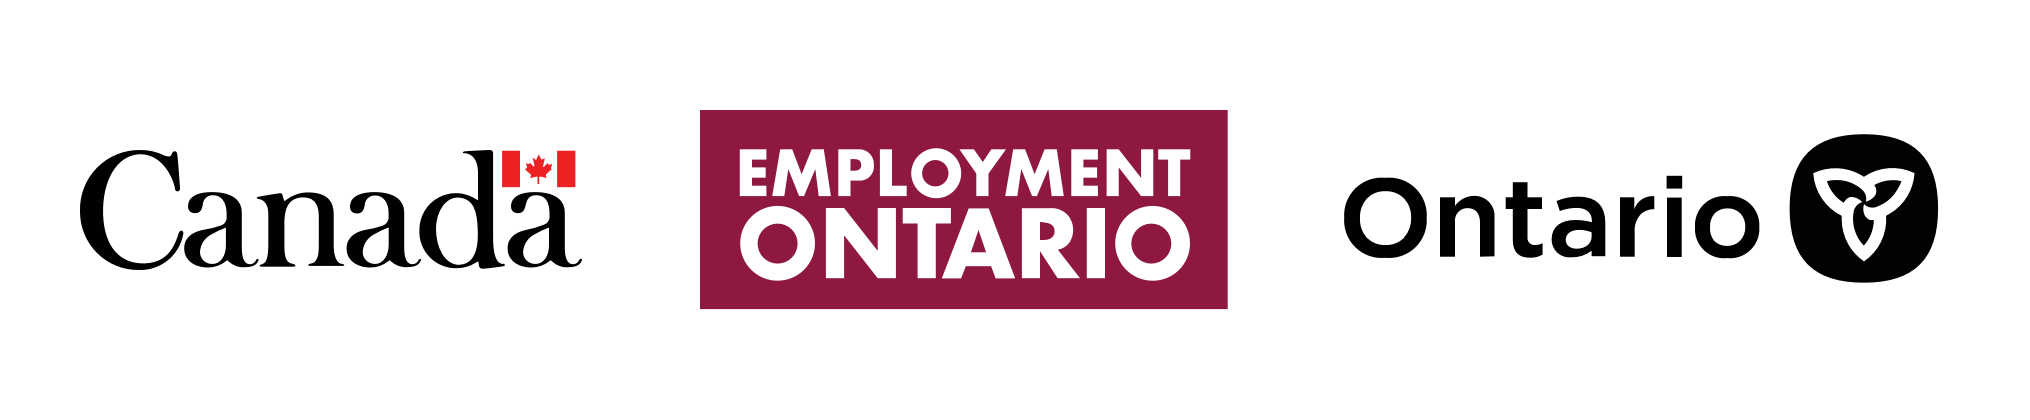 Logos of the Canadian Government, Employment Ontario, and the Ontario Government